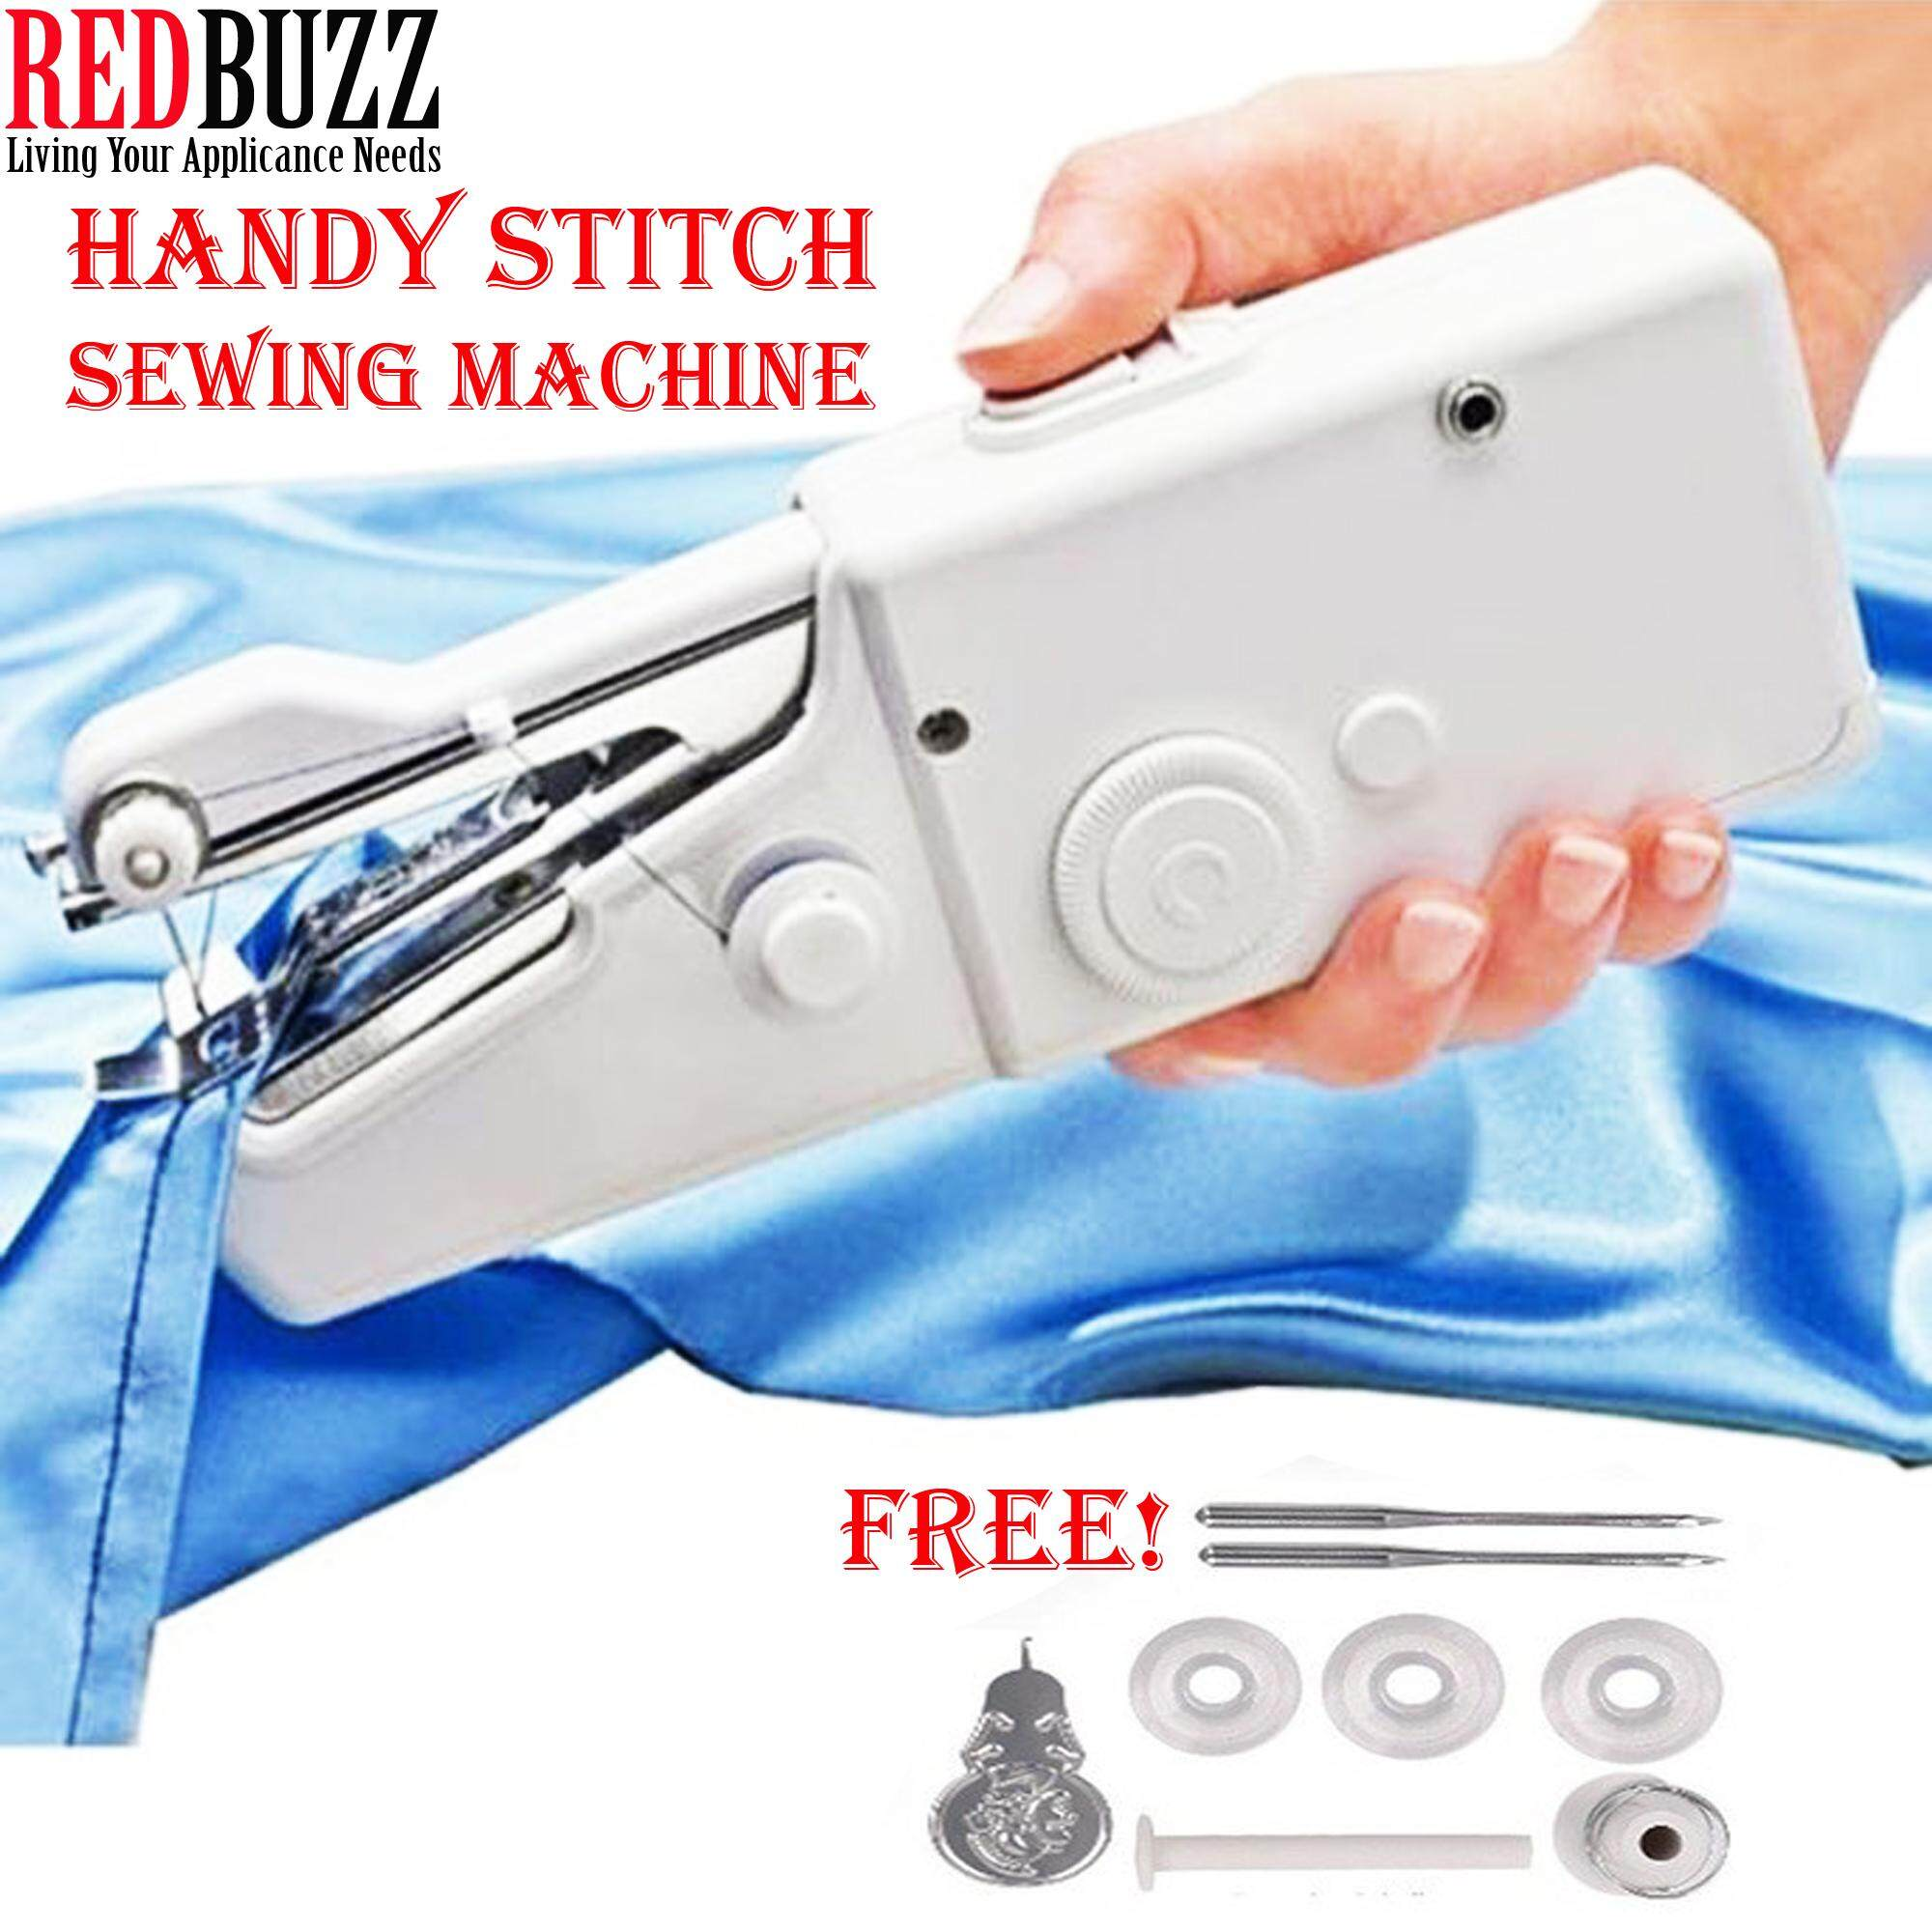 REDBUZZ Handy Stitch Mini Sewing Machine Portable Cordless Electric Handheld Sewing Machine